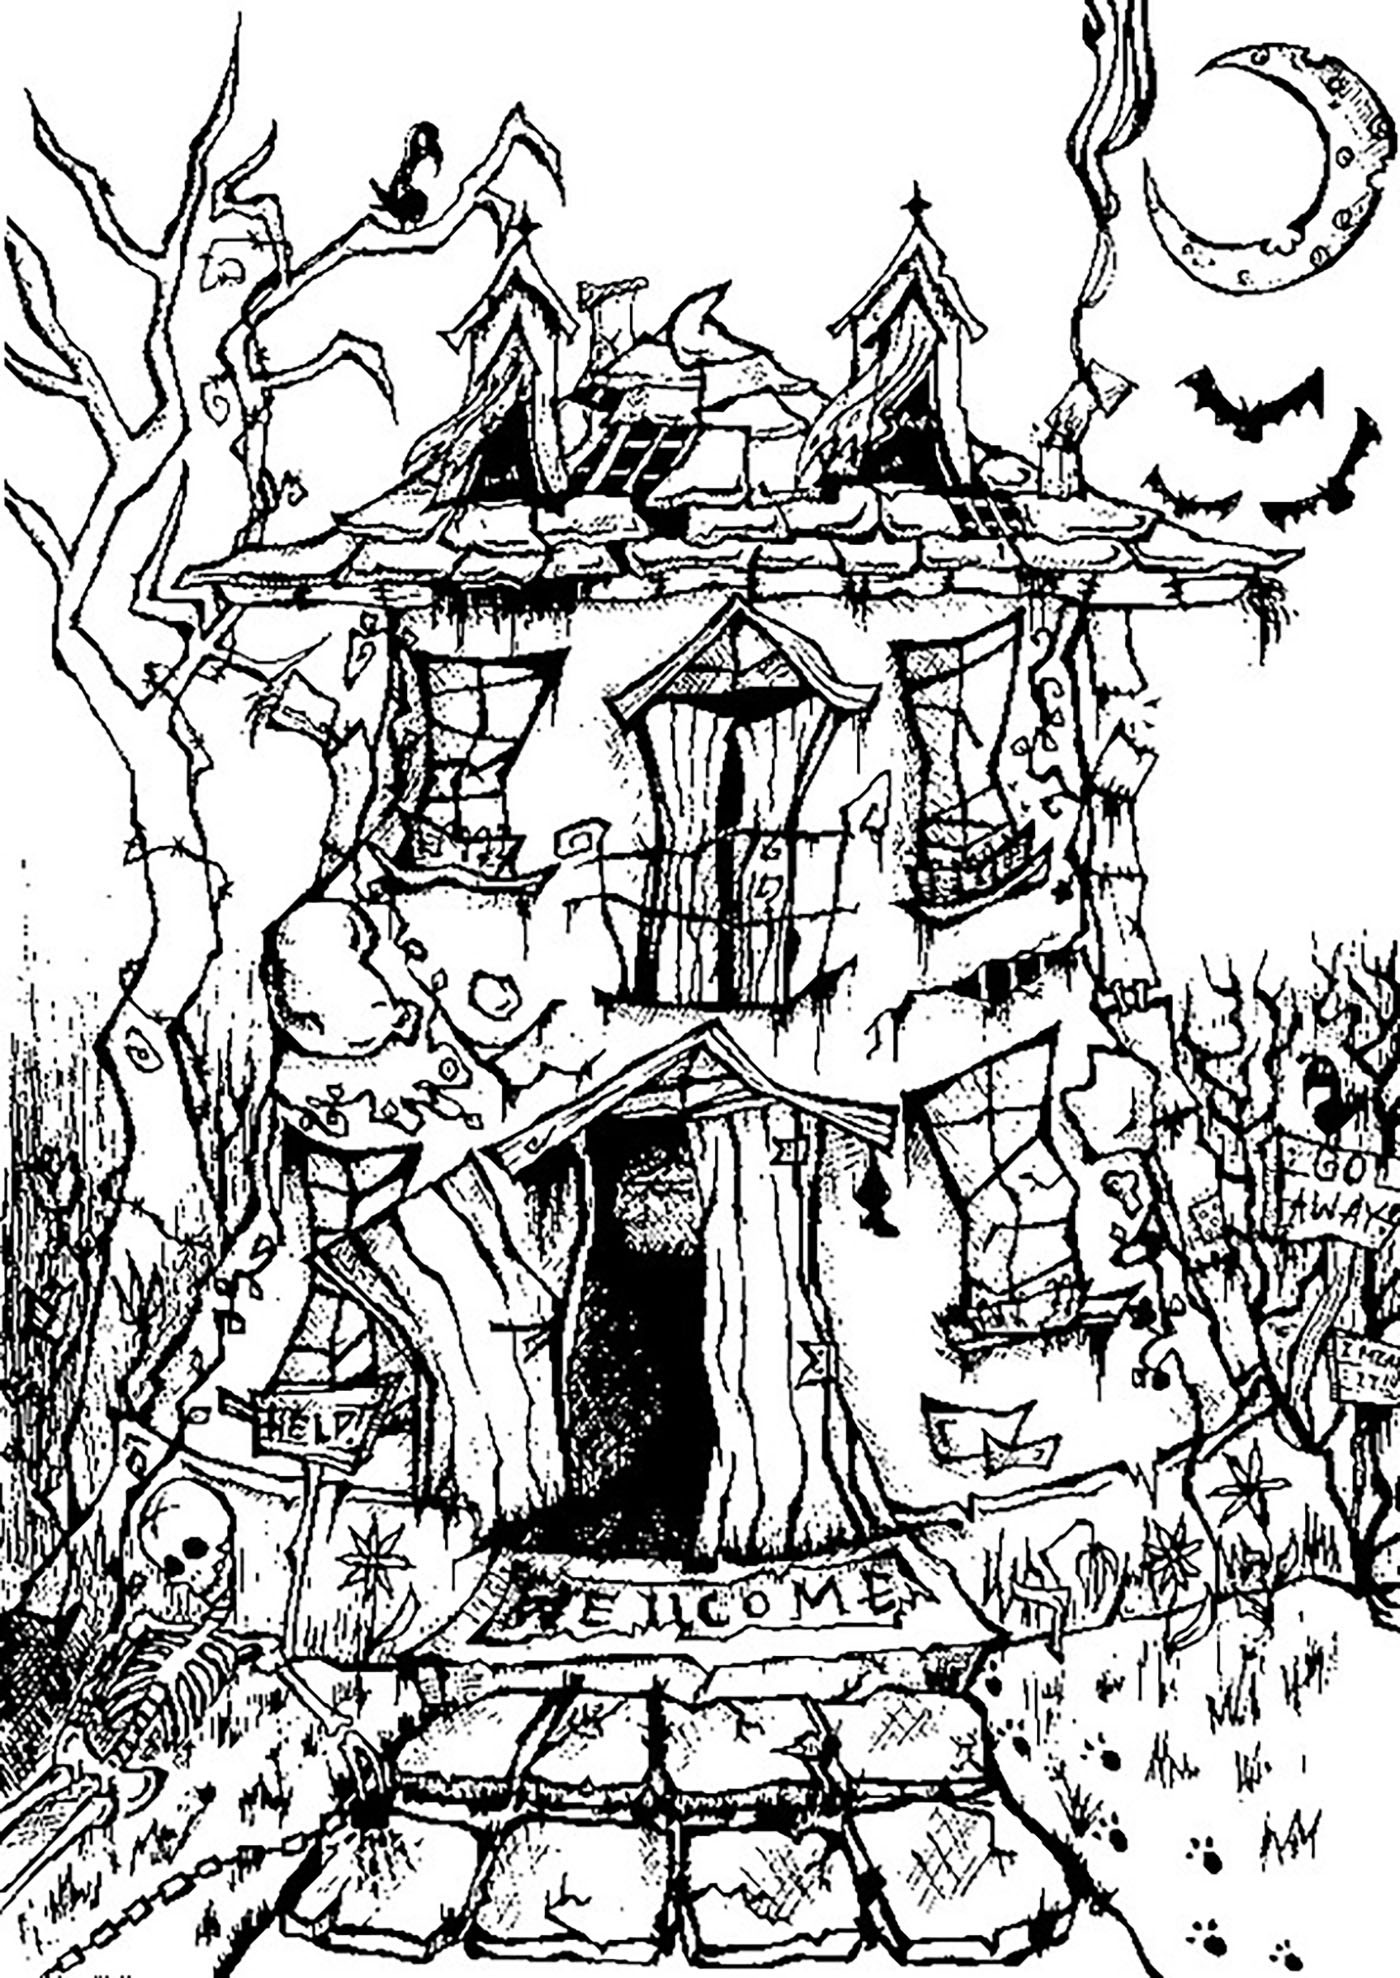 Scary Halloween Coloring Pages For Adults  Halloween haunted house Halloween Adult Coloring Pages